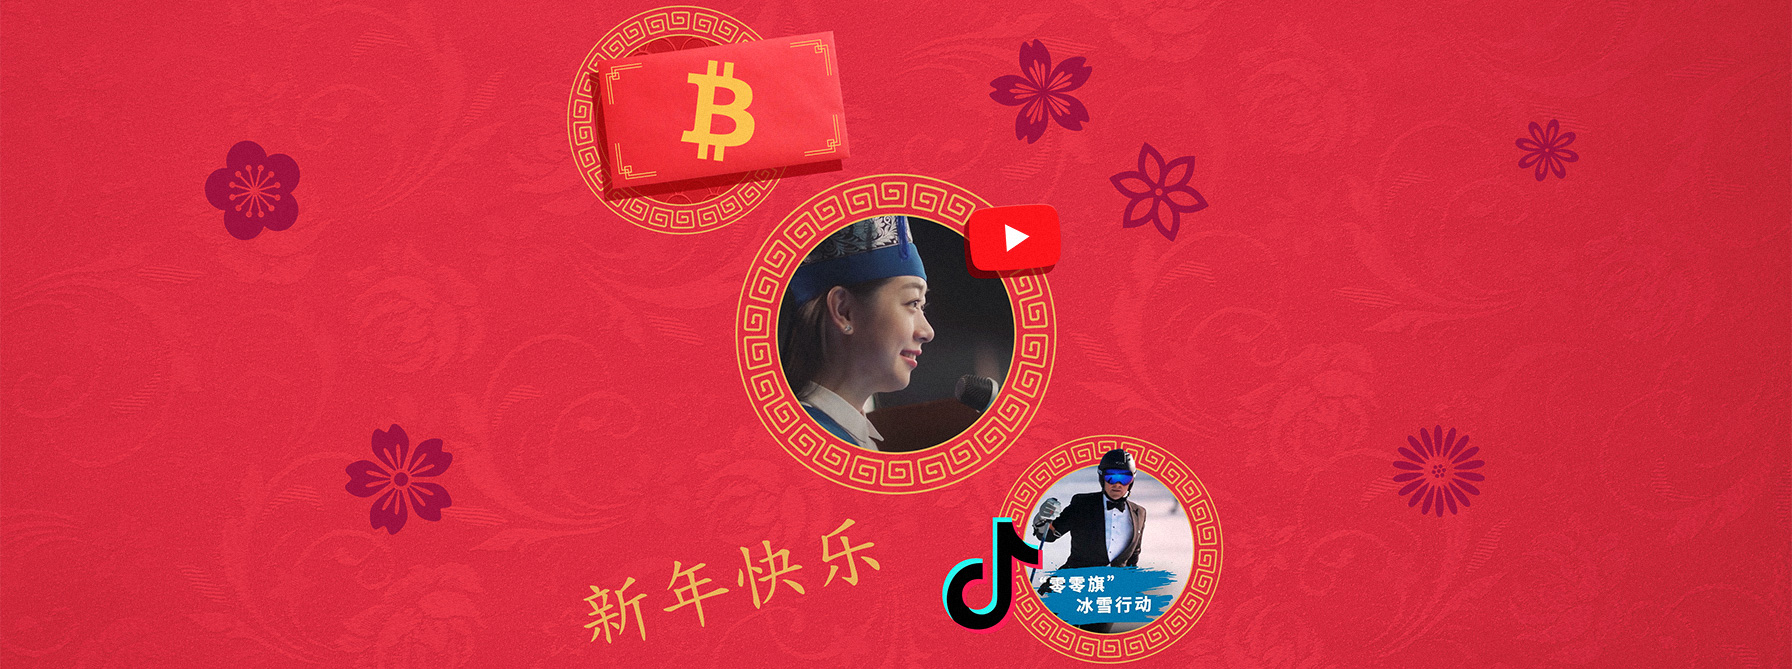 chinese-new-year-the-year-of-the-finance-brand-banner header